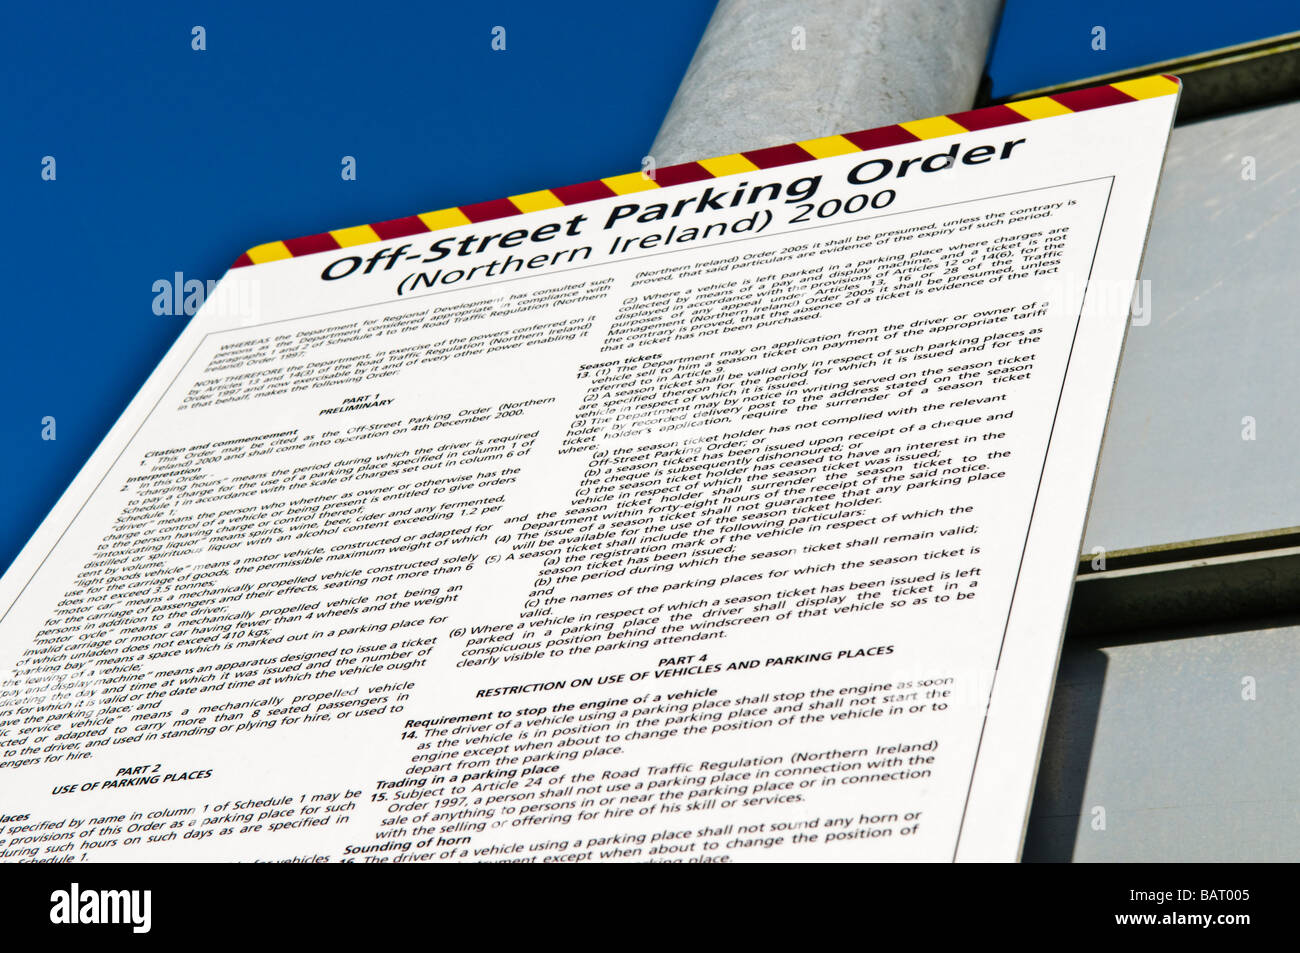 Parking regulations at a car park run by the Department of the Environment for Northern Ireland. - Stock Image